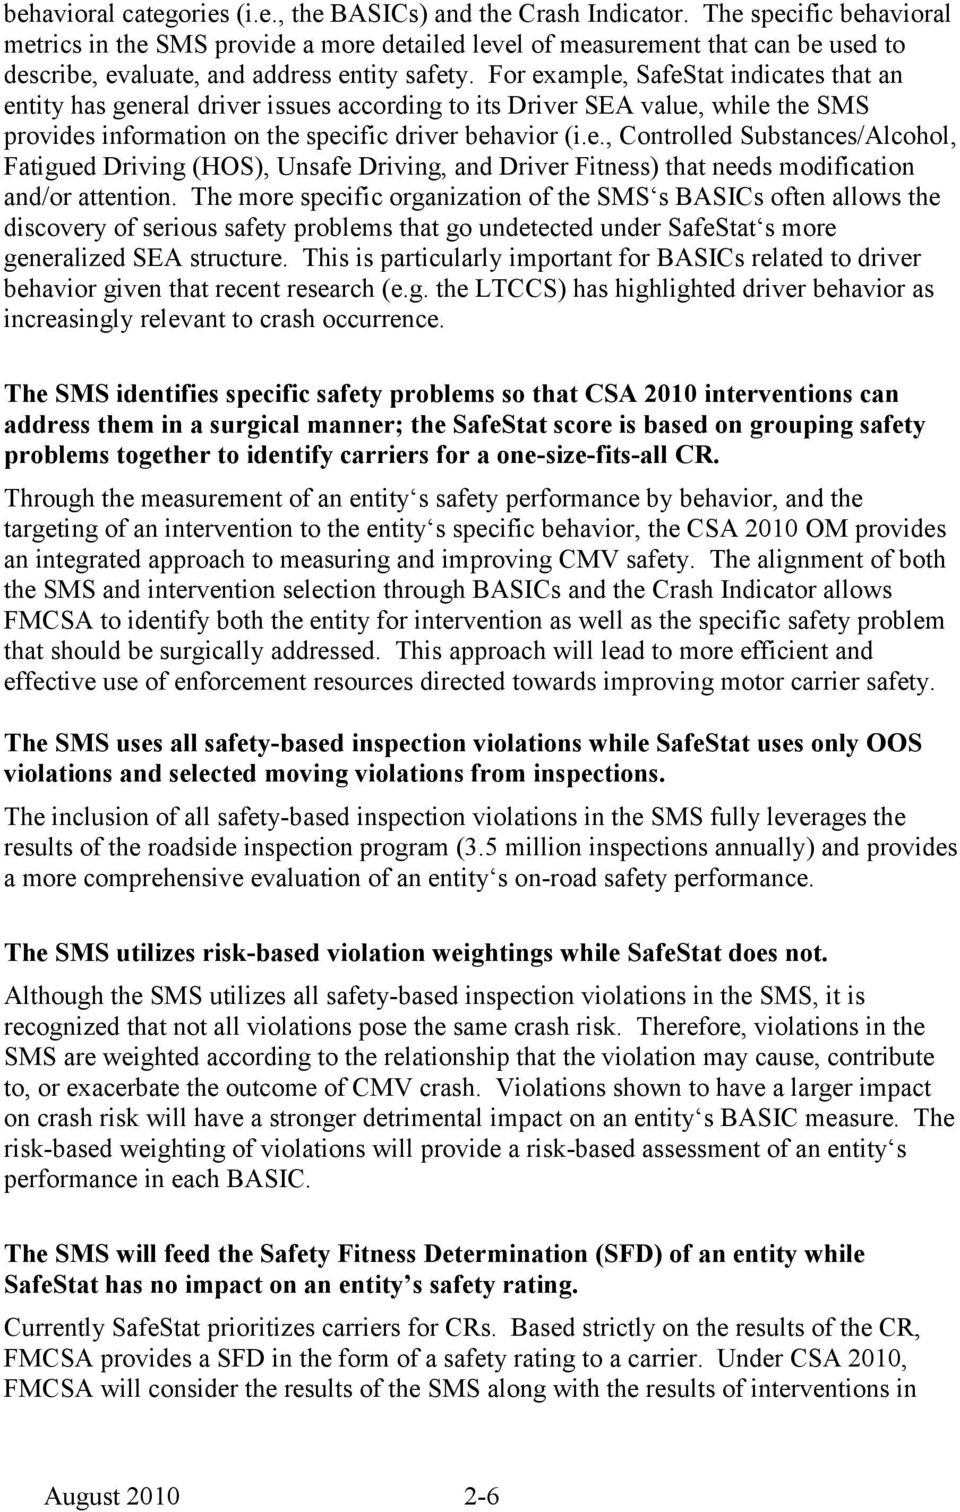 For example, SafeStat indicates that an entity has general driver issues according to its Driver SEA value, while the SMS provides information on the specific driver behavior (i.e., Controlled Substances/Alcohol, Fatigued Driving (HOS), Unsafe Driving, and Driver Fitness) that needs modification and/or attention.